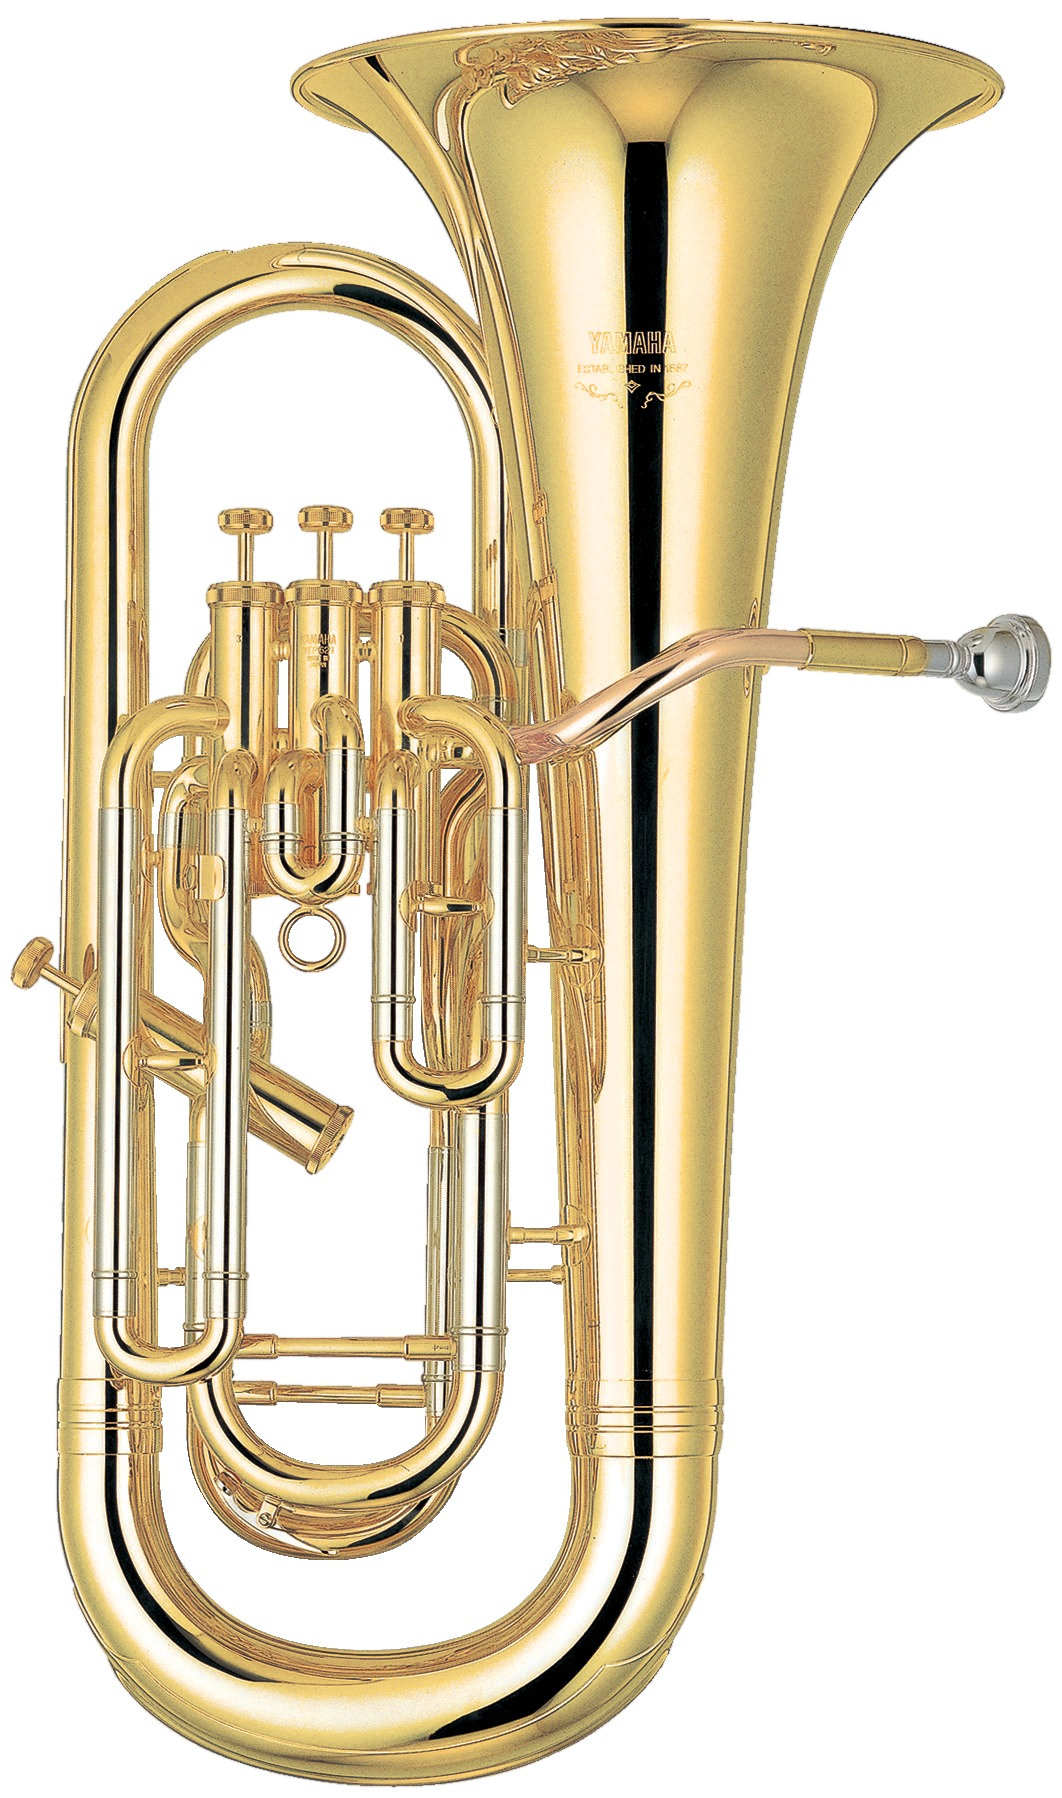 A history of the euphonium a musical instrument